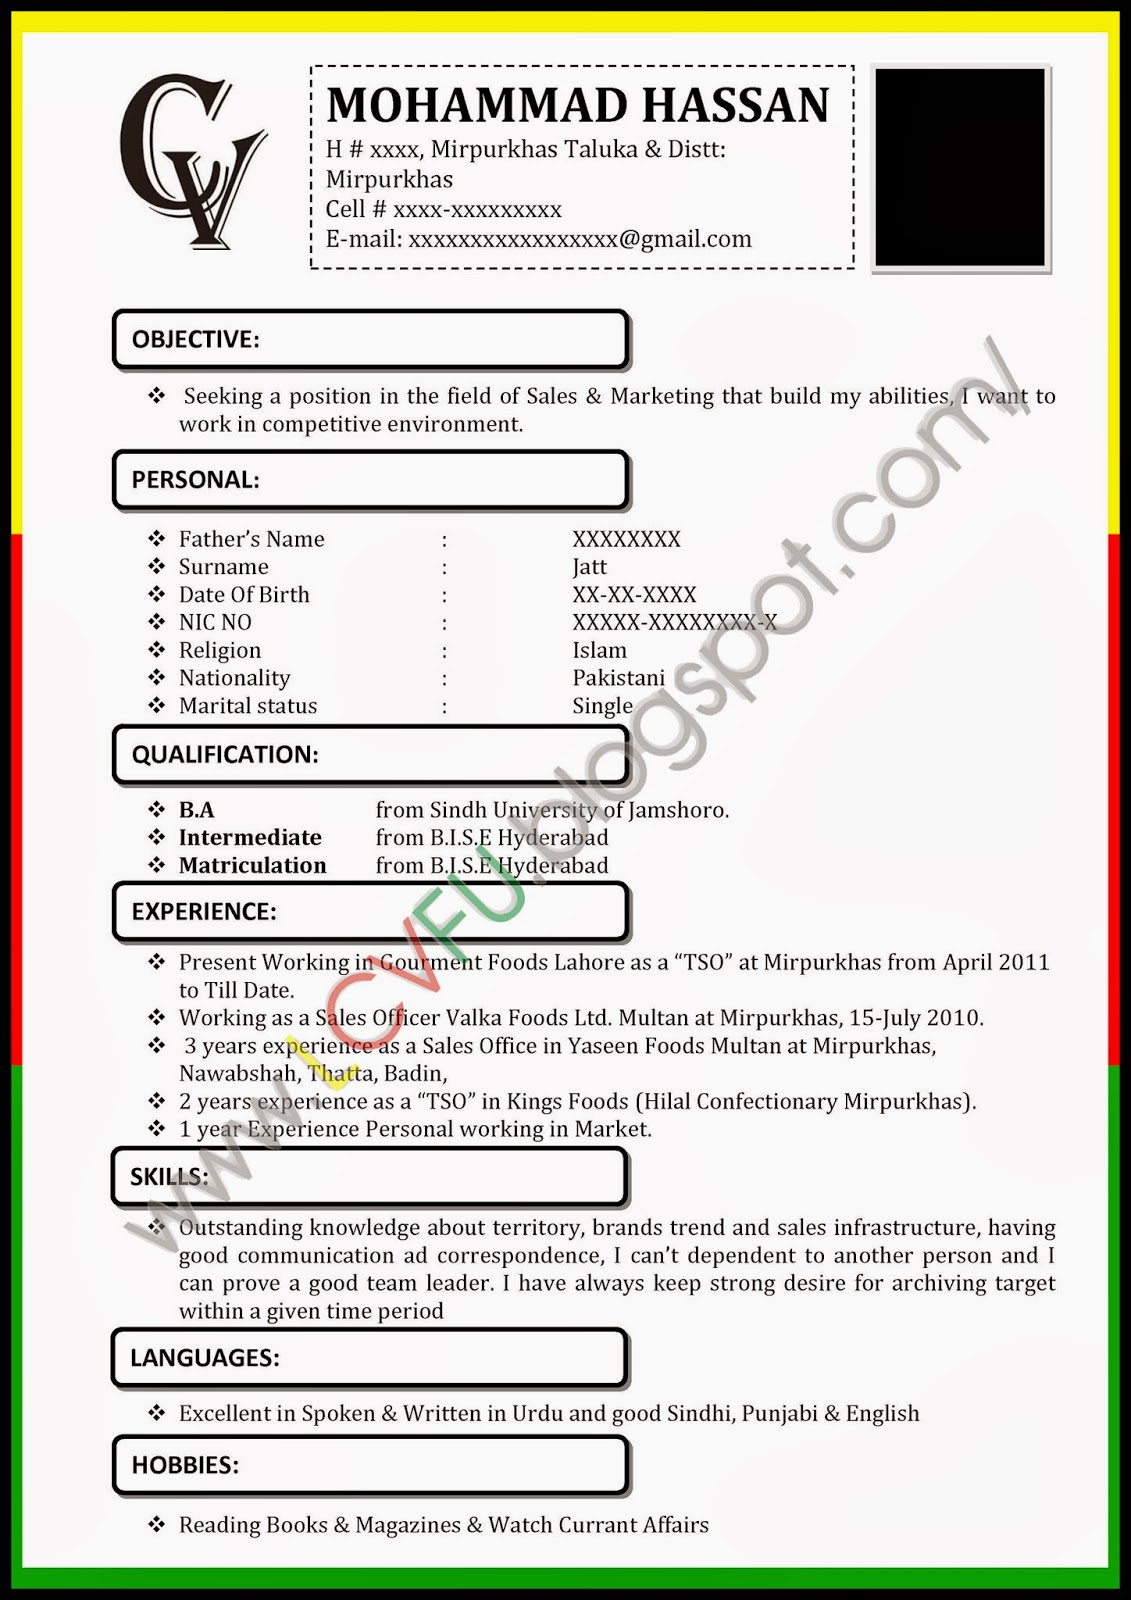 Curriculum Vitae Resume Formats Blogspot  How To Do A Resume On Microsoft Word